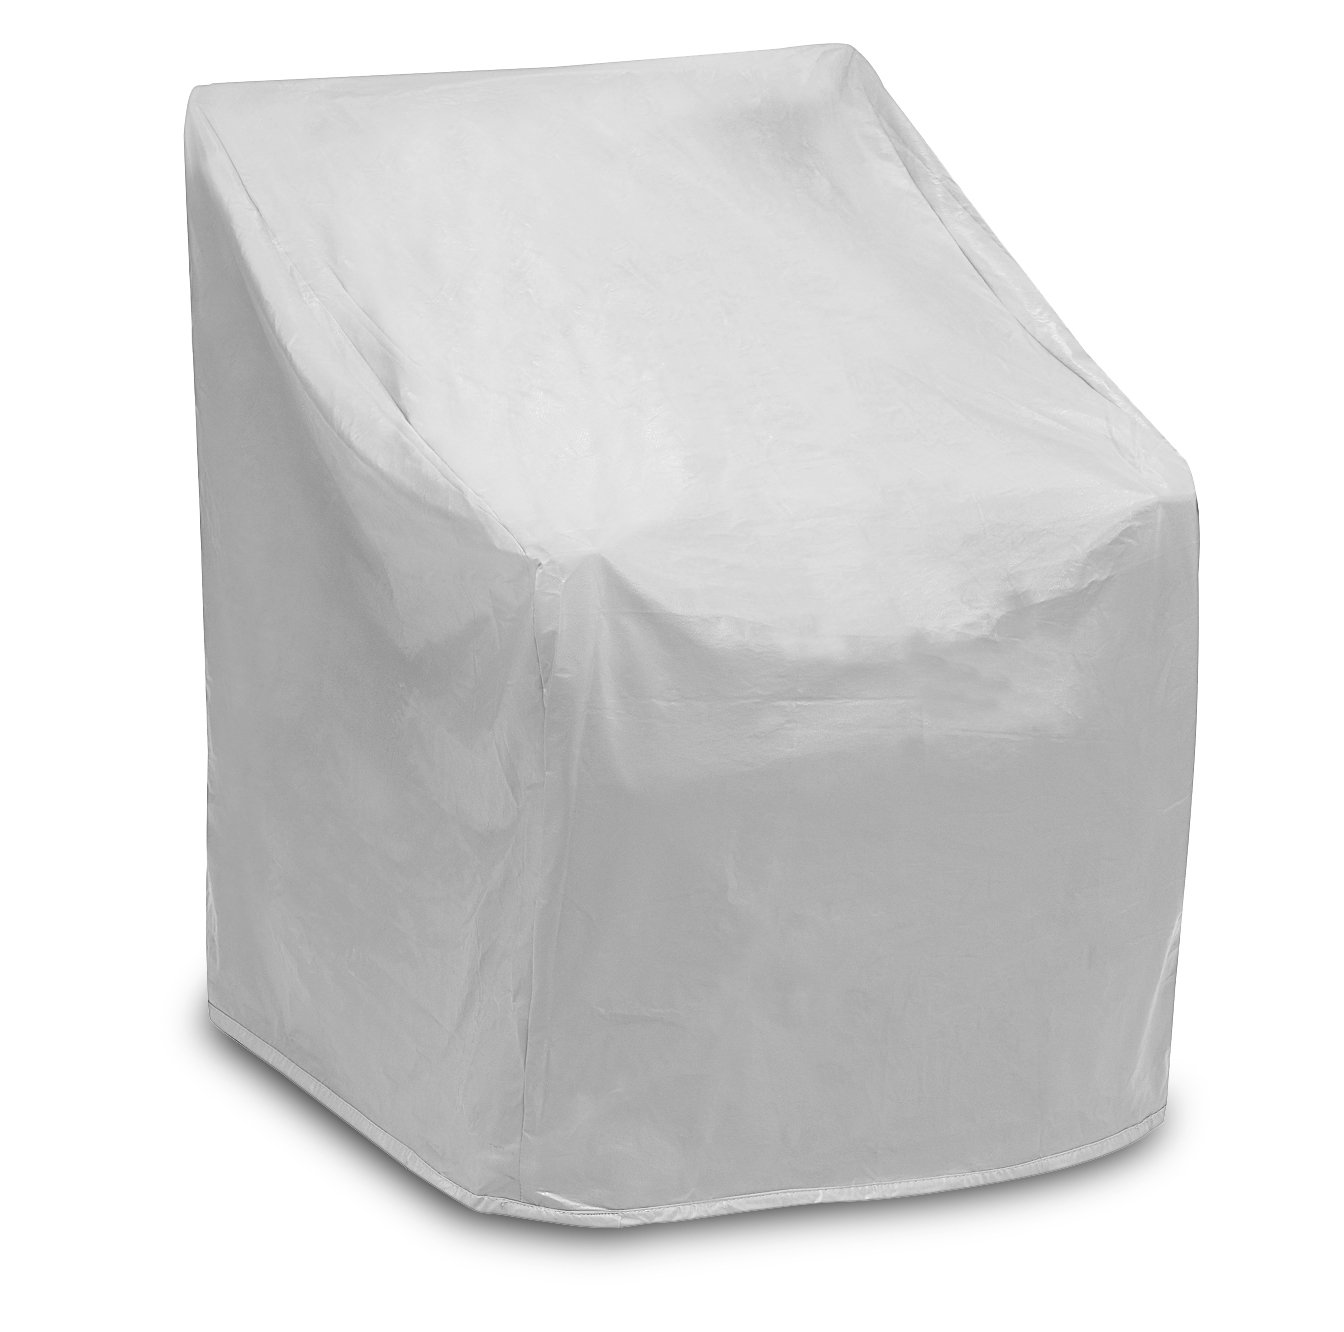 Protective Covers Weatherproof Chair Cover, 35 Inch X 29 Inch, Gray product image